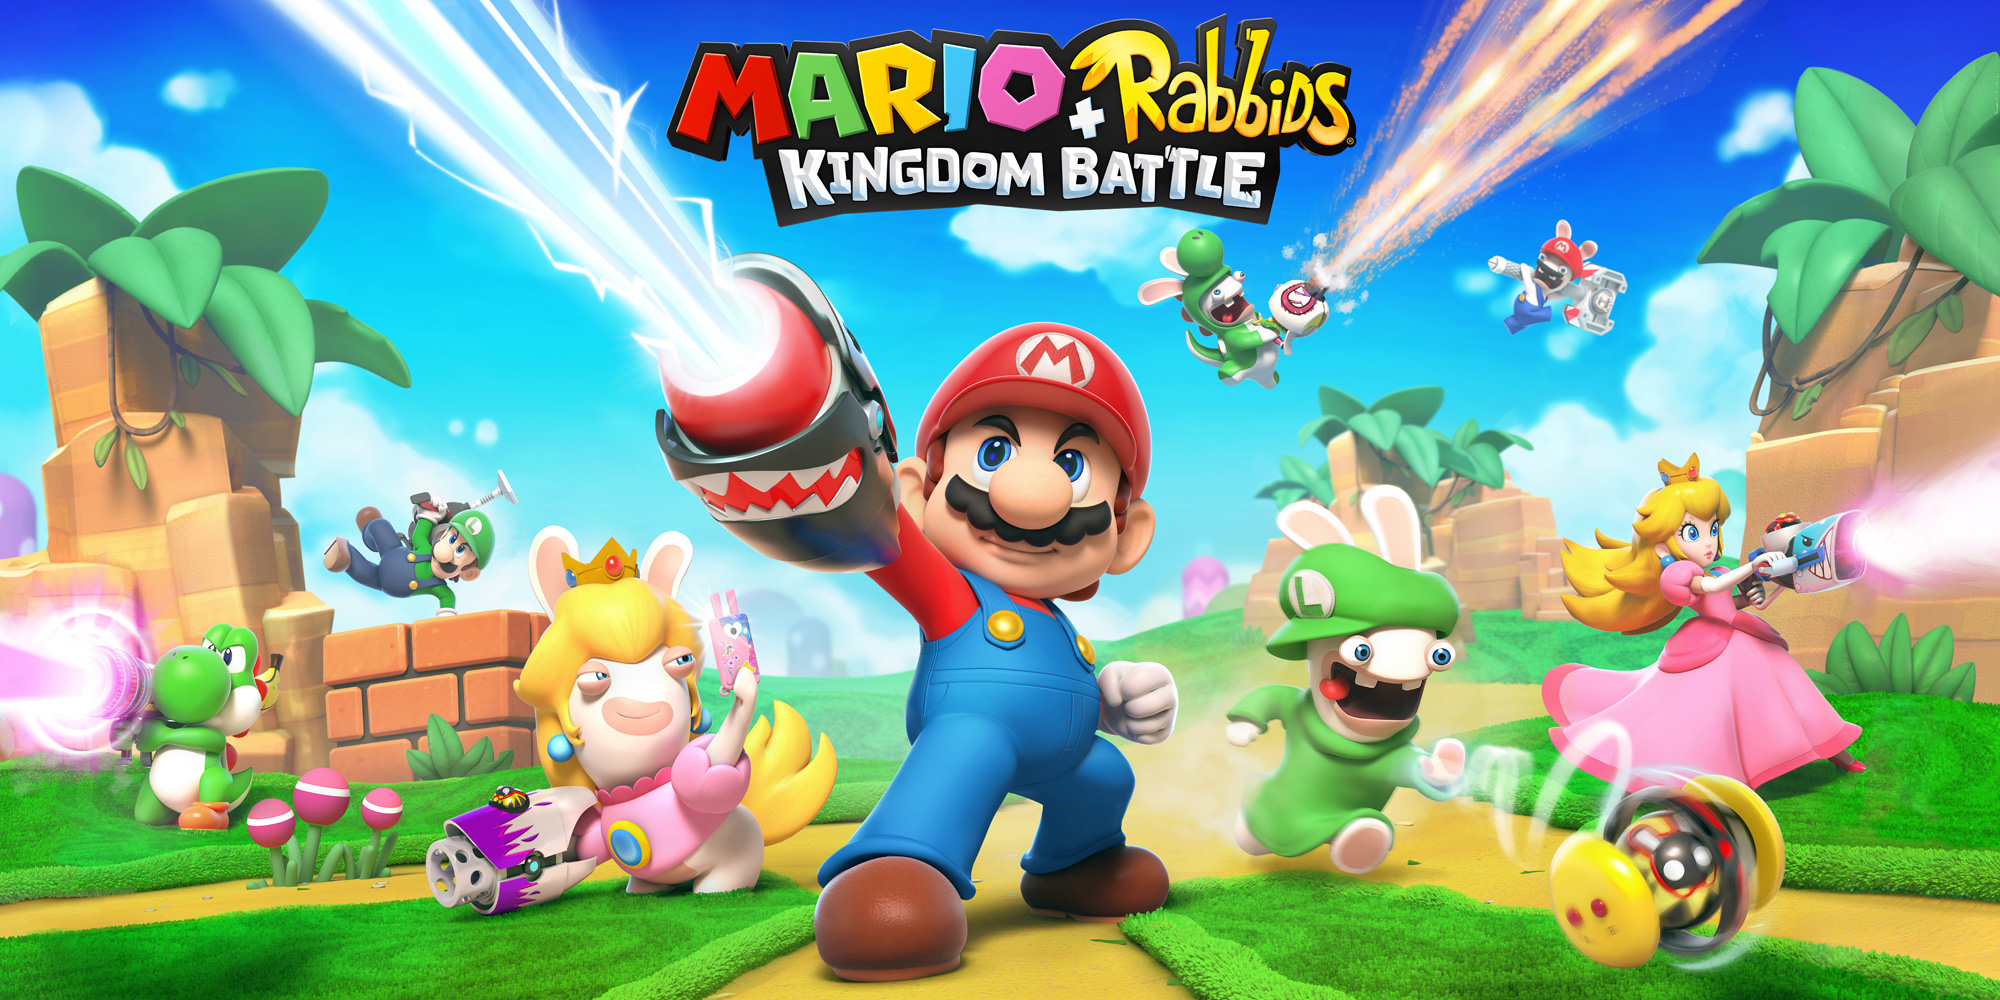 MARIO RABBIDS – KINGDOM BATTLE